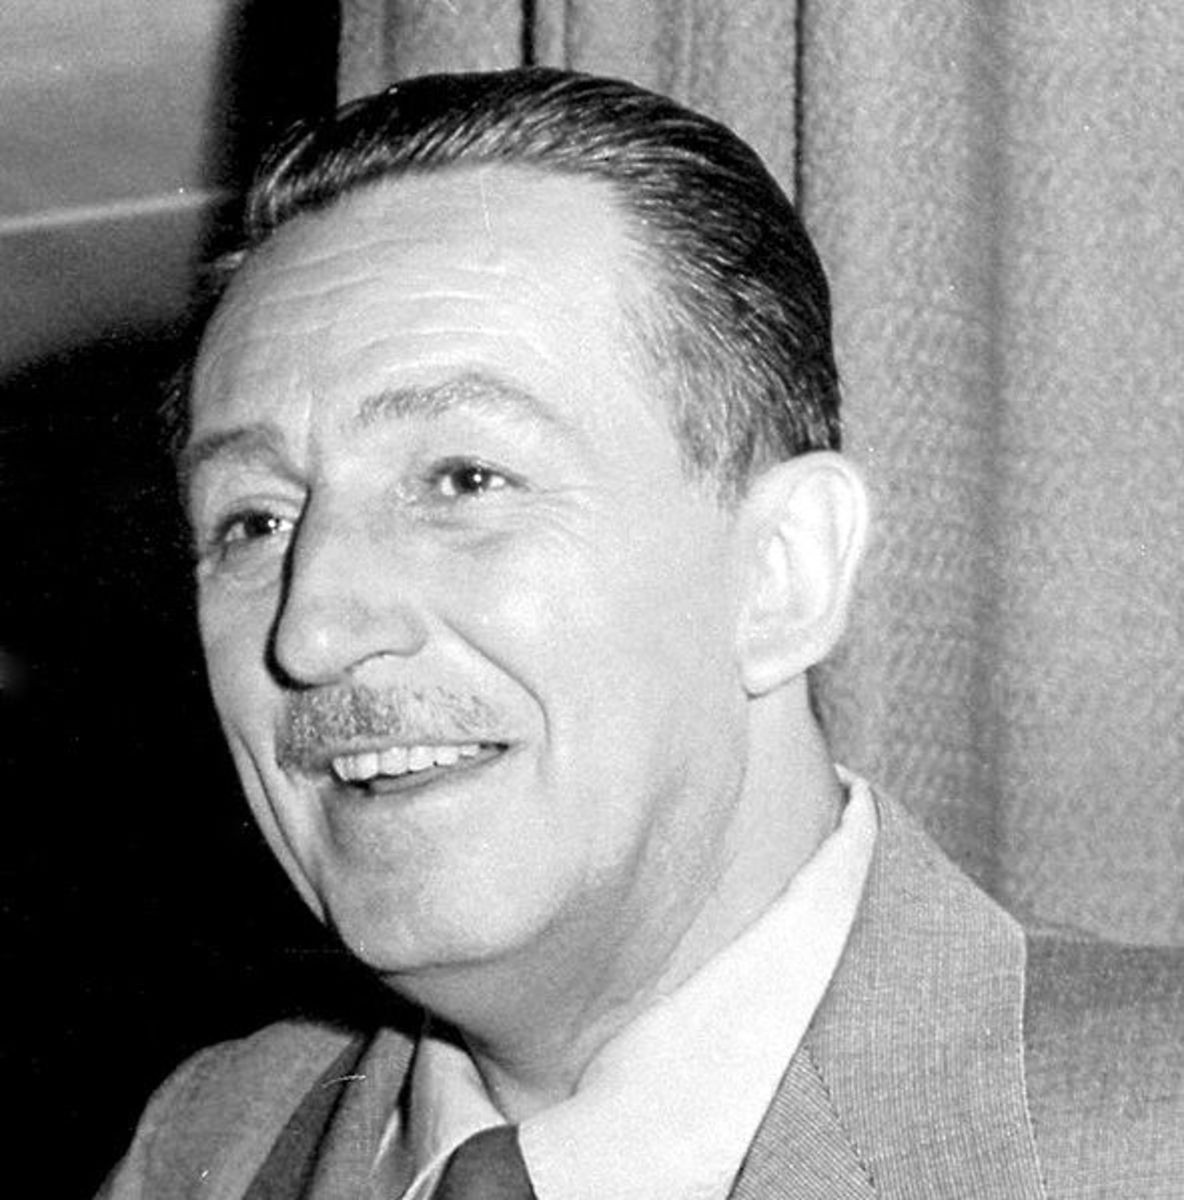 Was Walt Disney anti-woman?